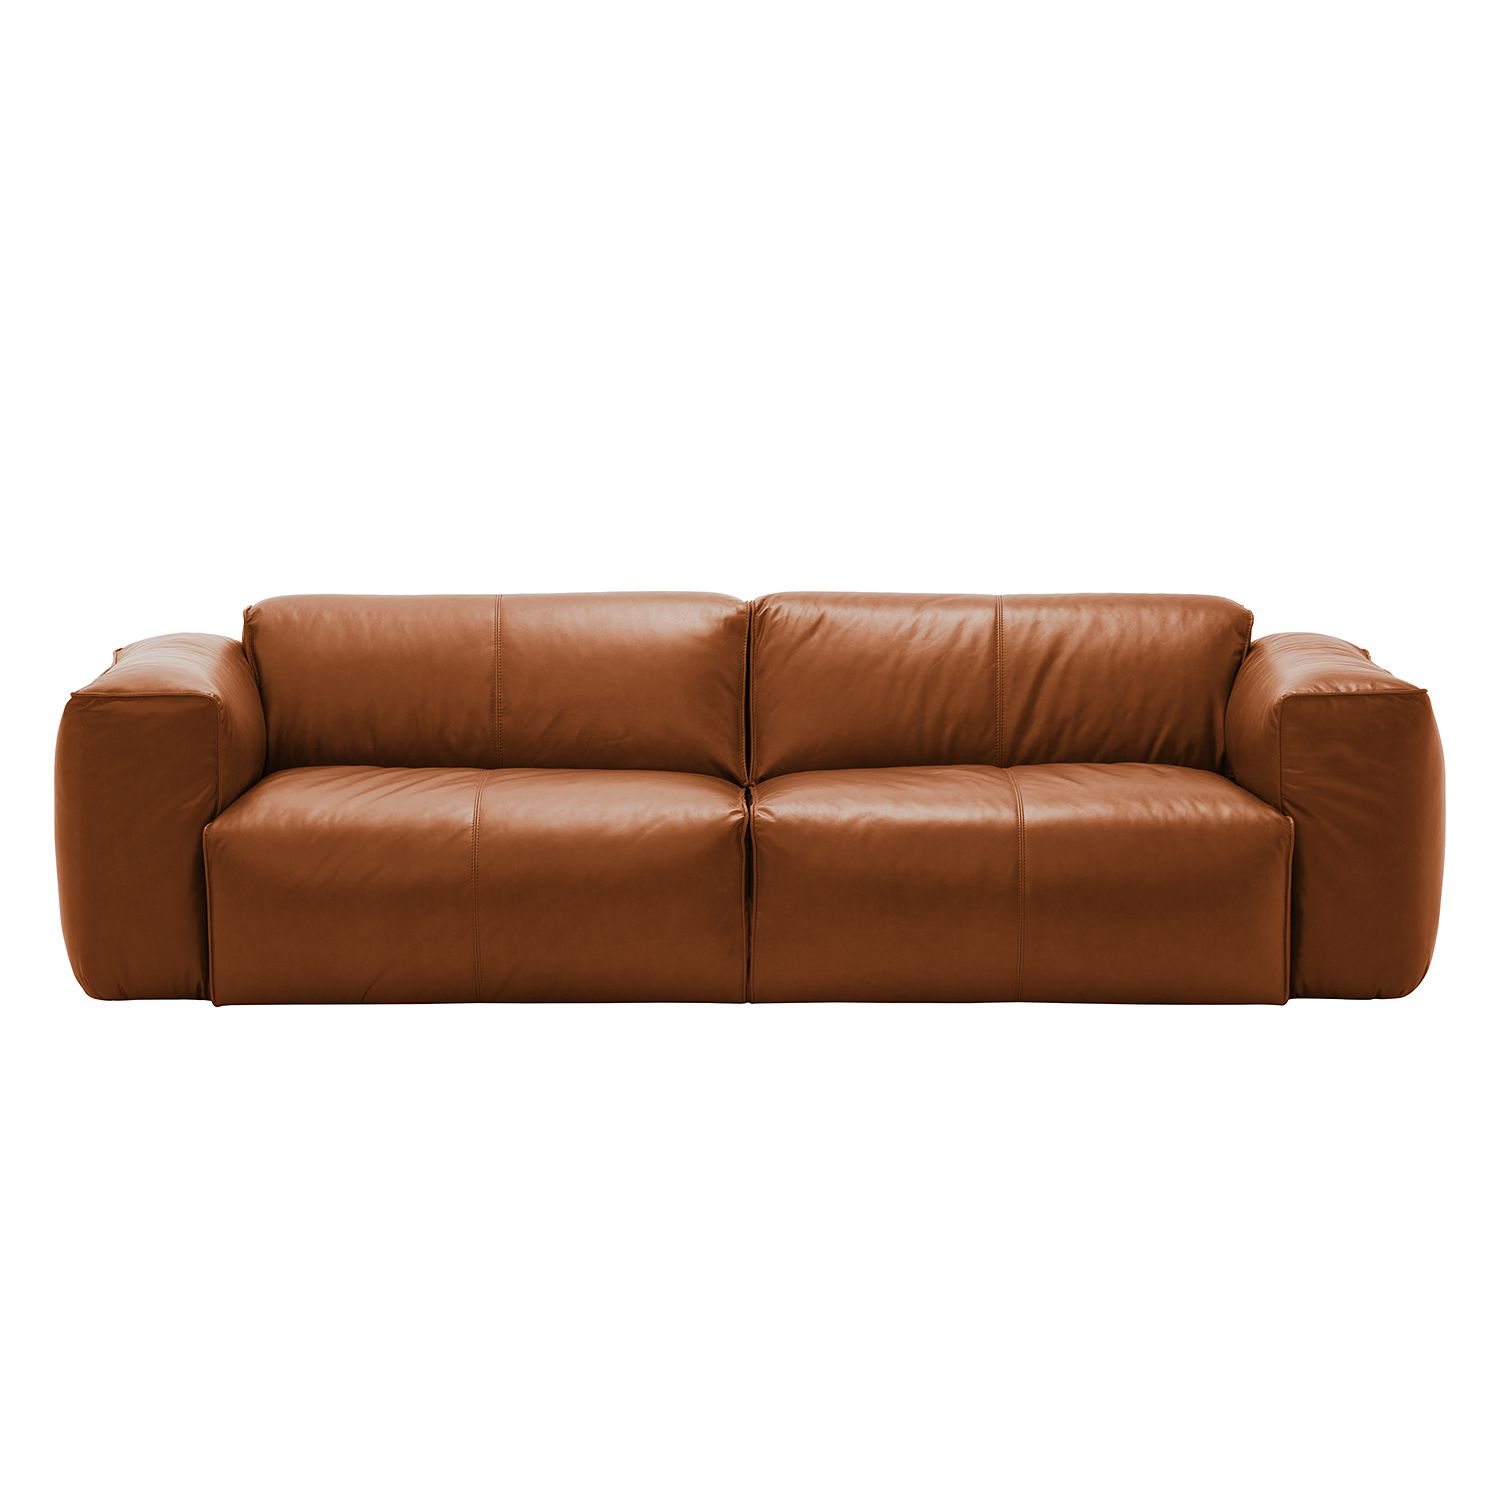 Sofa Hudson Ii 3 Sitzer Echtleder Fashion For Home